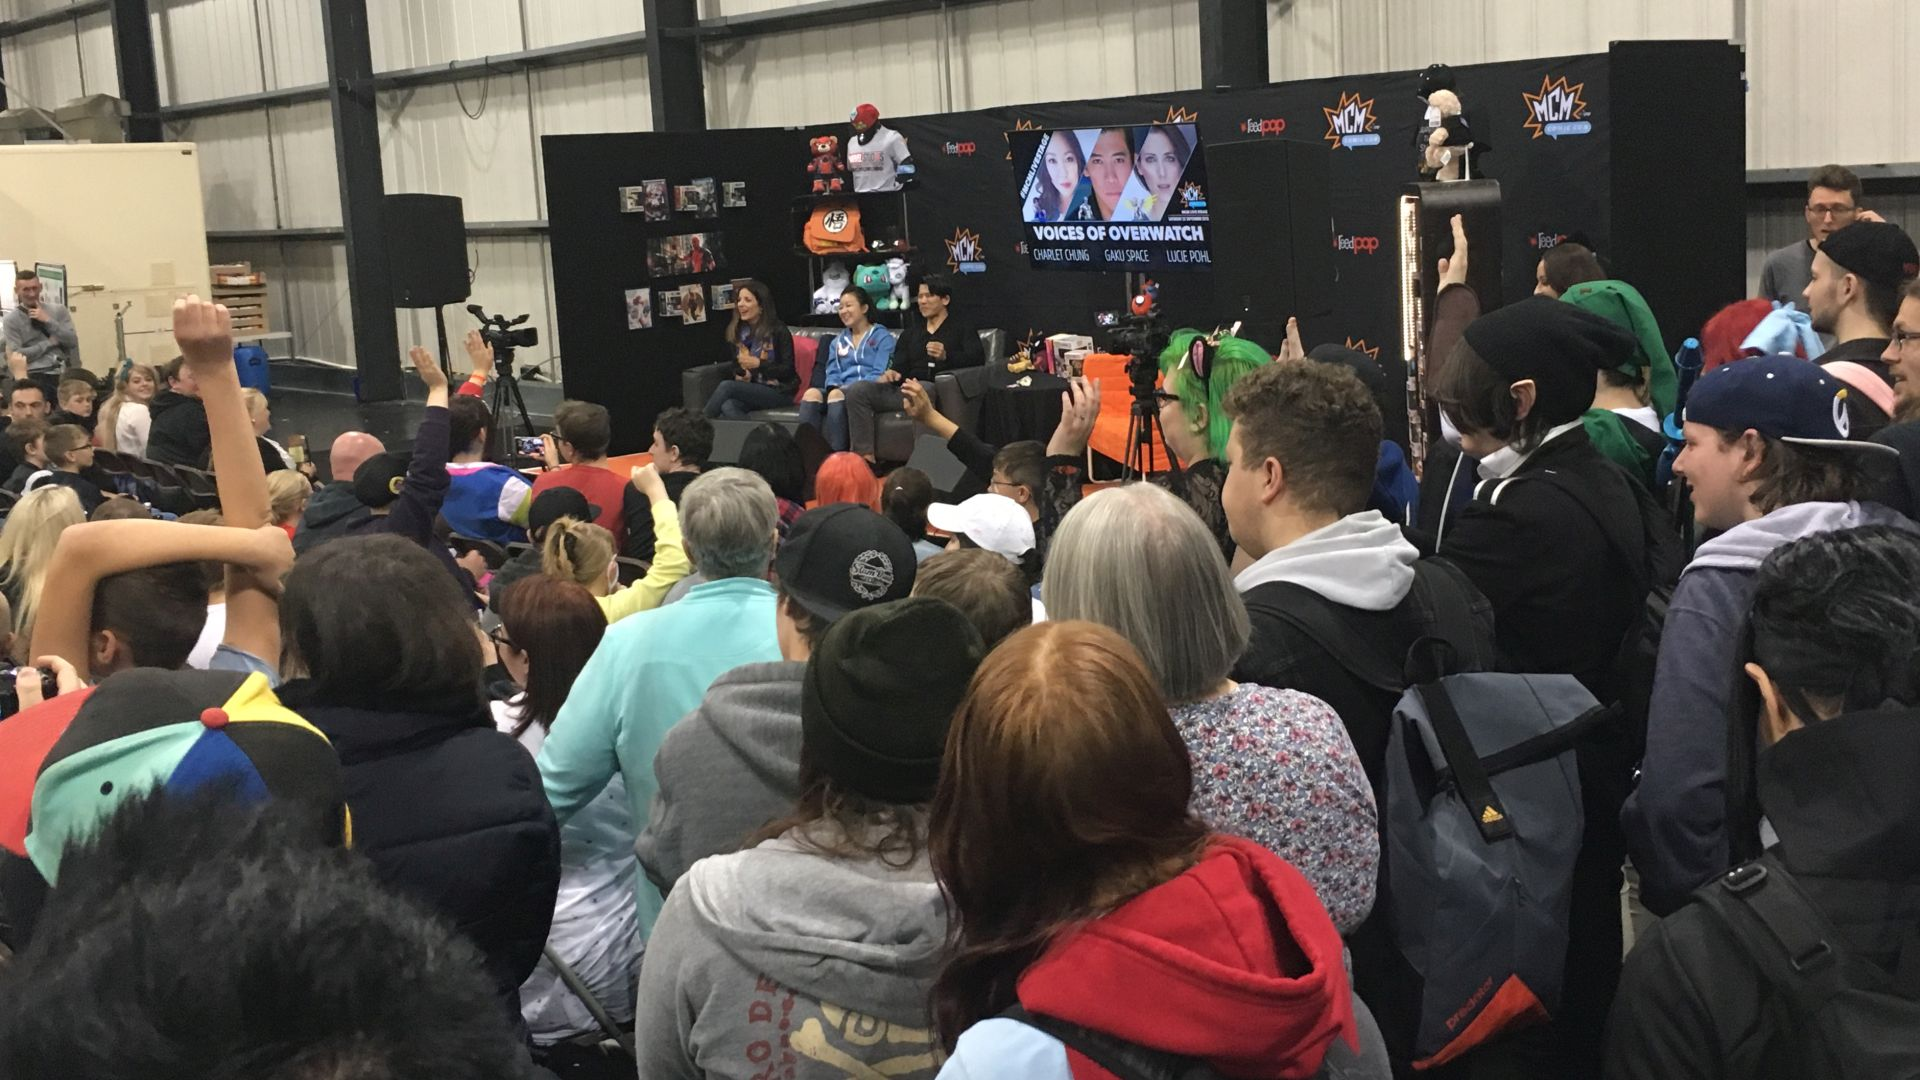 OneBigStar MCM London Comic Con May 2019 Exhibition Features Full Production